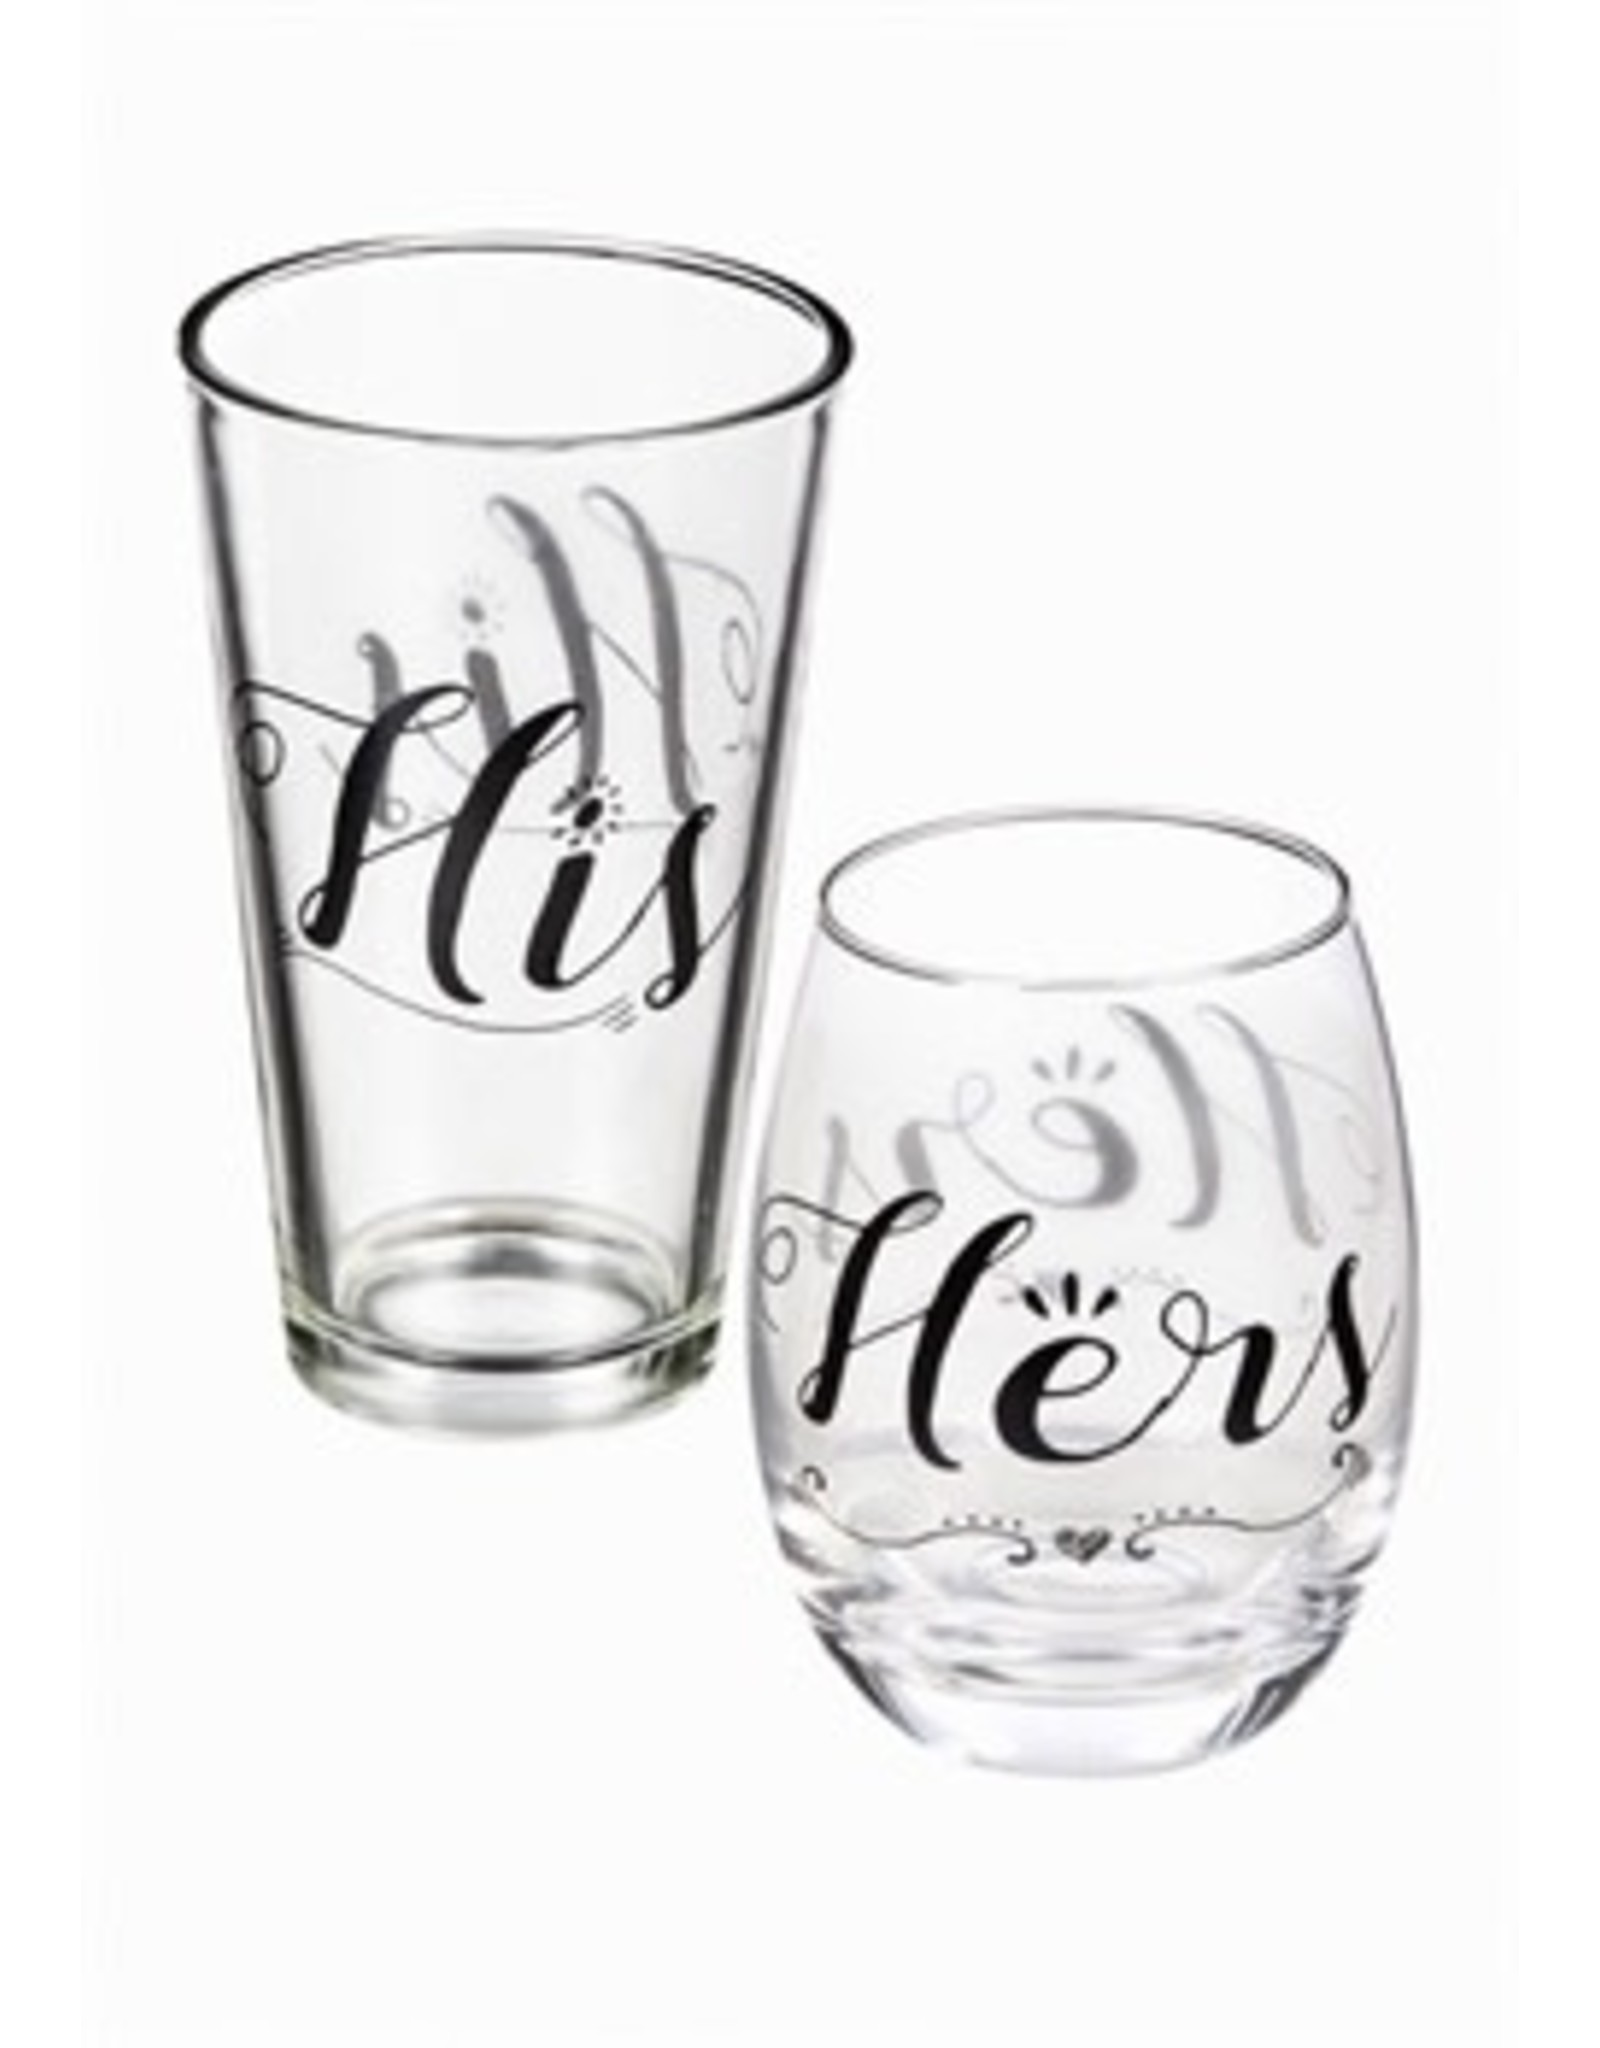 Evergreen Enterprises Stemless Wine Glass & Beer Cup Gift Set, Hers & His